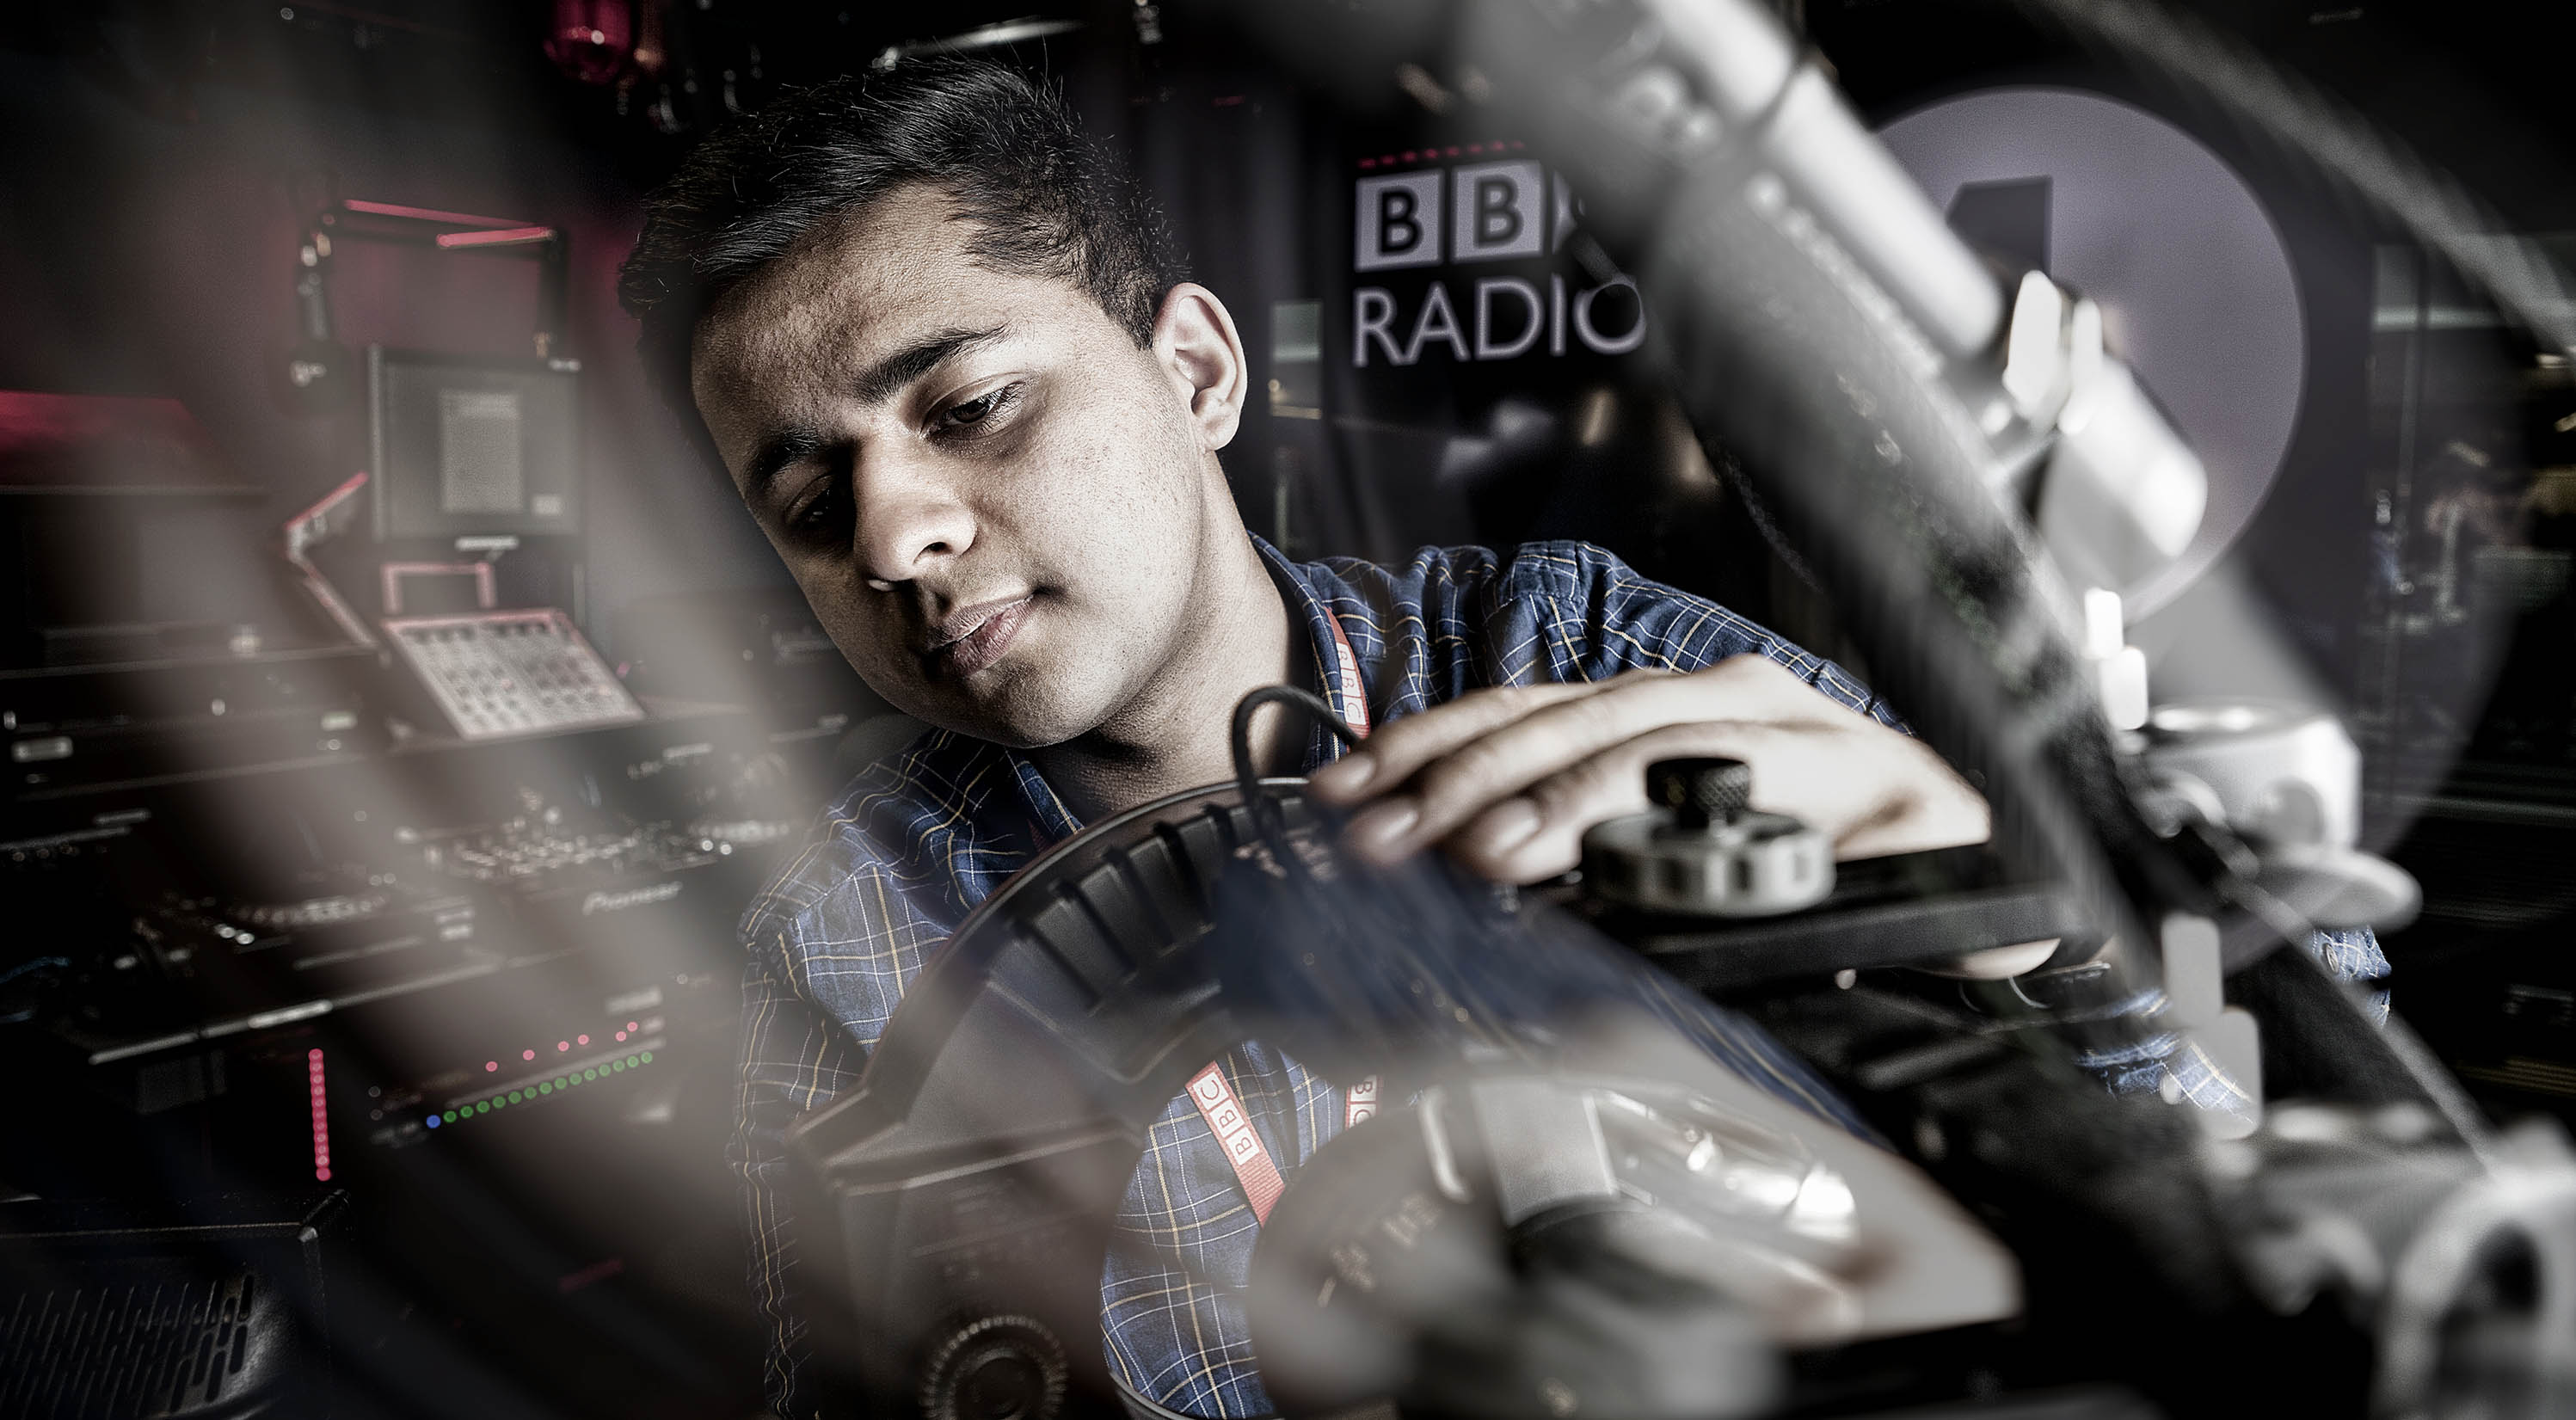 Technicians Make It Happen Industrial Photography at BBC Radio 1 Corporate Portrait of Technician at Adjusting a Mic in the Studio © Paul Worpole Photography